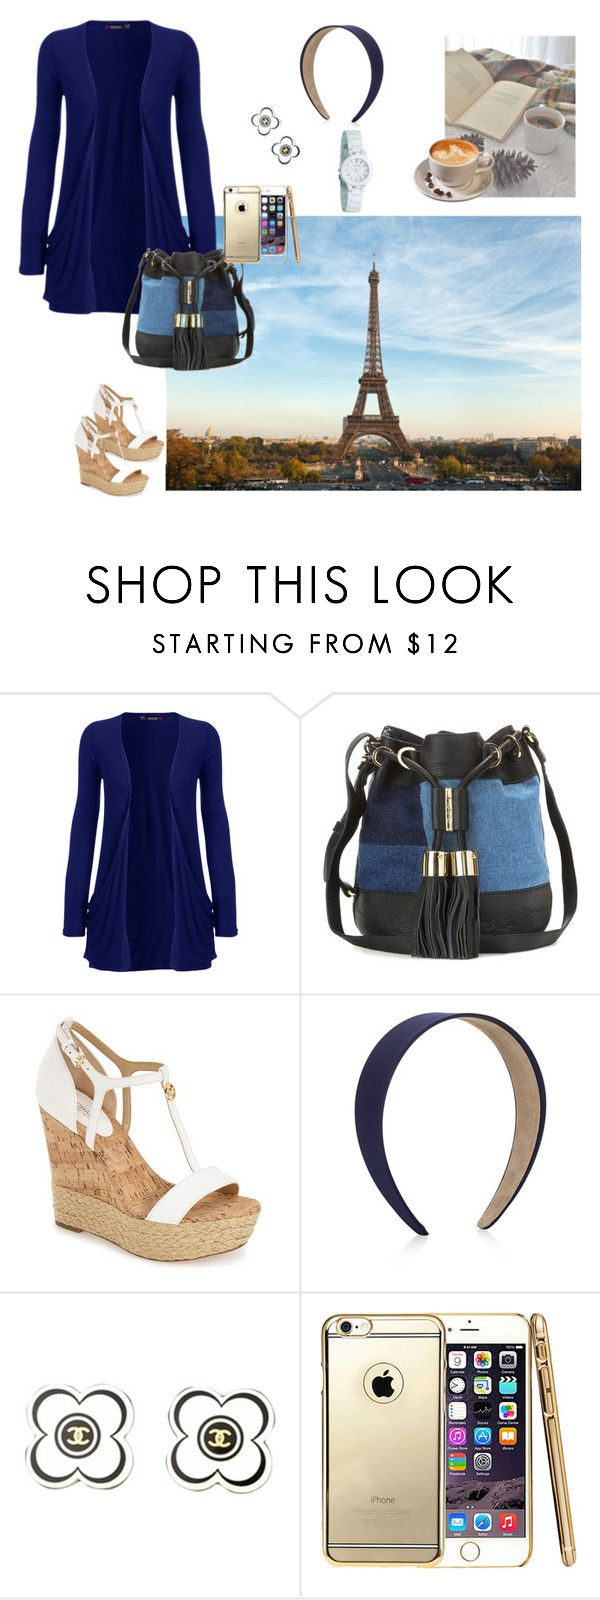 """""""resort wear 7"""" by sdi431872 on Polyvore featuring WearAll, See by Chloé, MICHAEL Michael Kors, Accessorize, Chanel, DKNY, women's clothing, women, female and woman"""